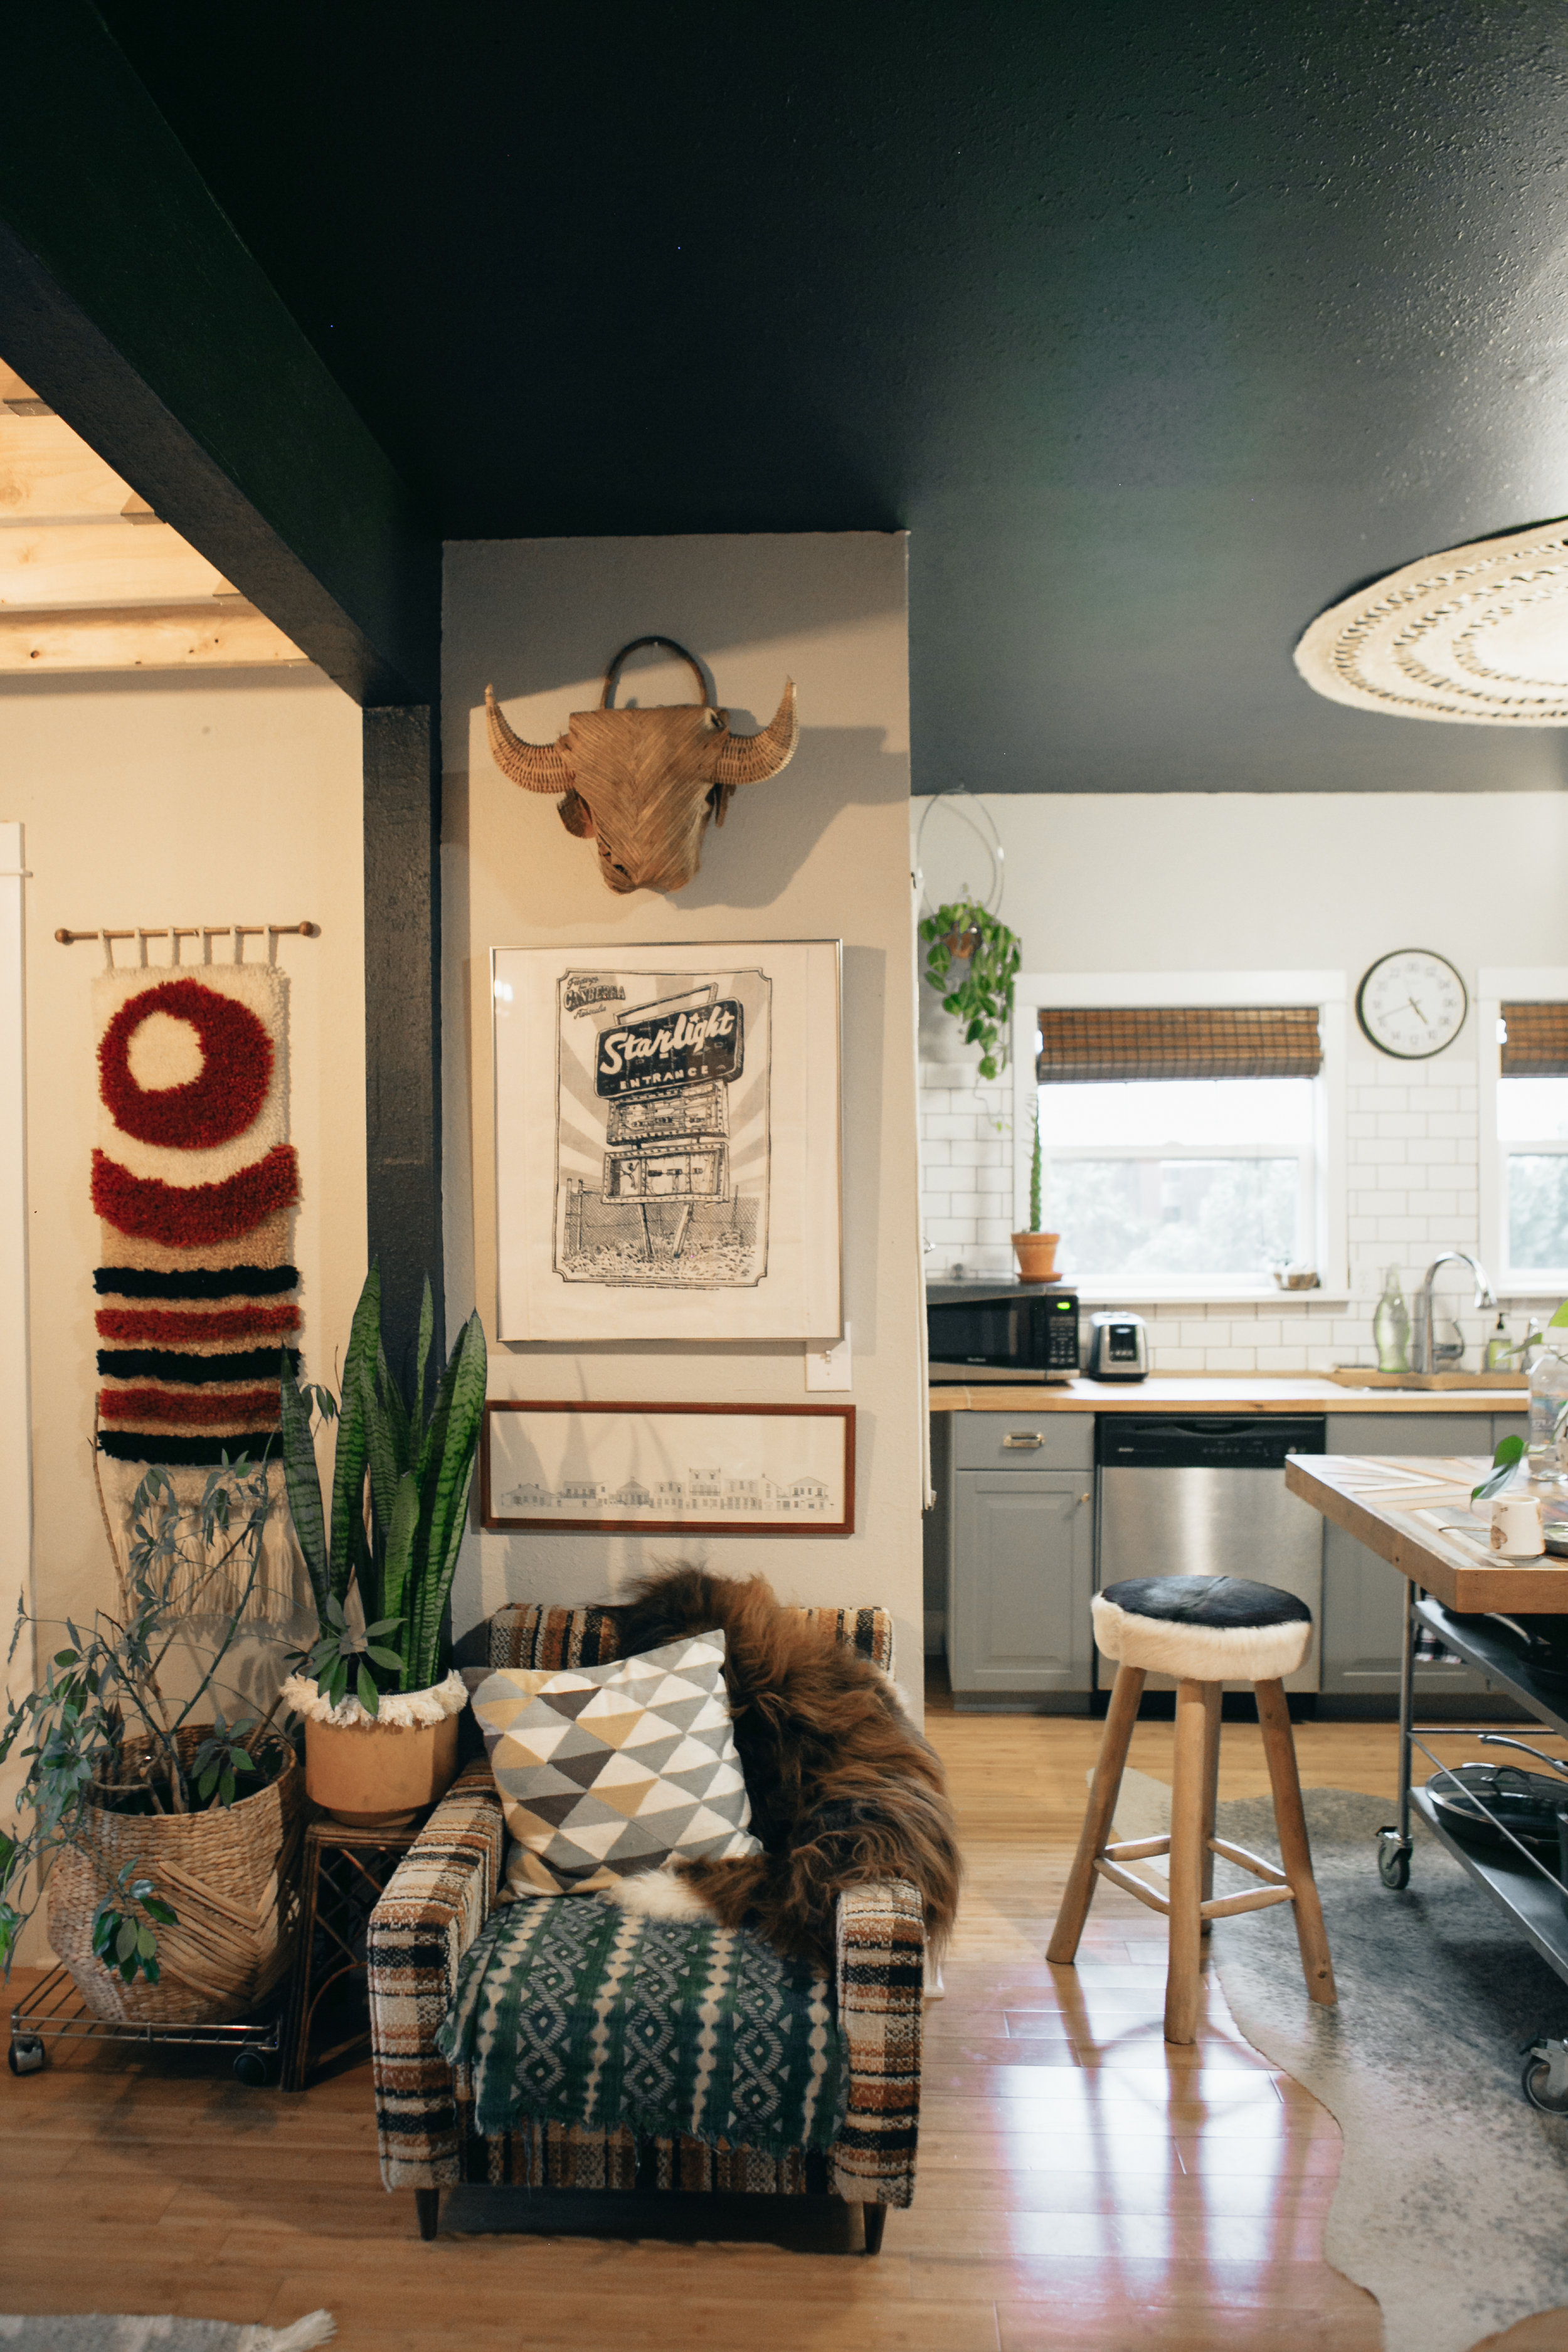 I still can't believe how beautiful and thoughtfully curated the home of Liz Kamurul's is. When Liz posted that she would be renting her home out on airbnb, I knew I had to jump on that opportunity. My only regret is that we couldn't stay longer!